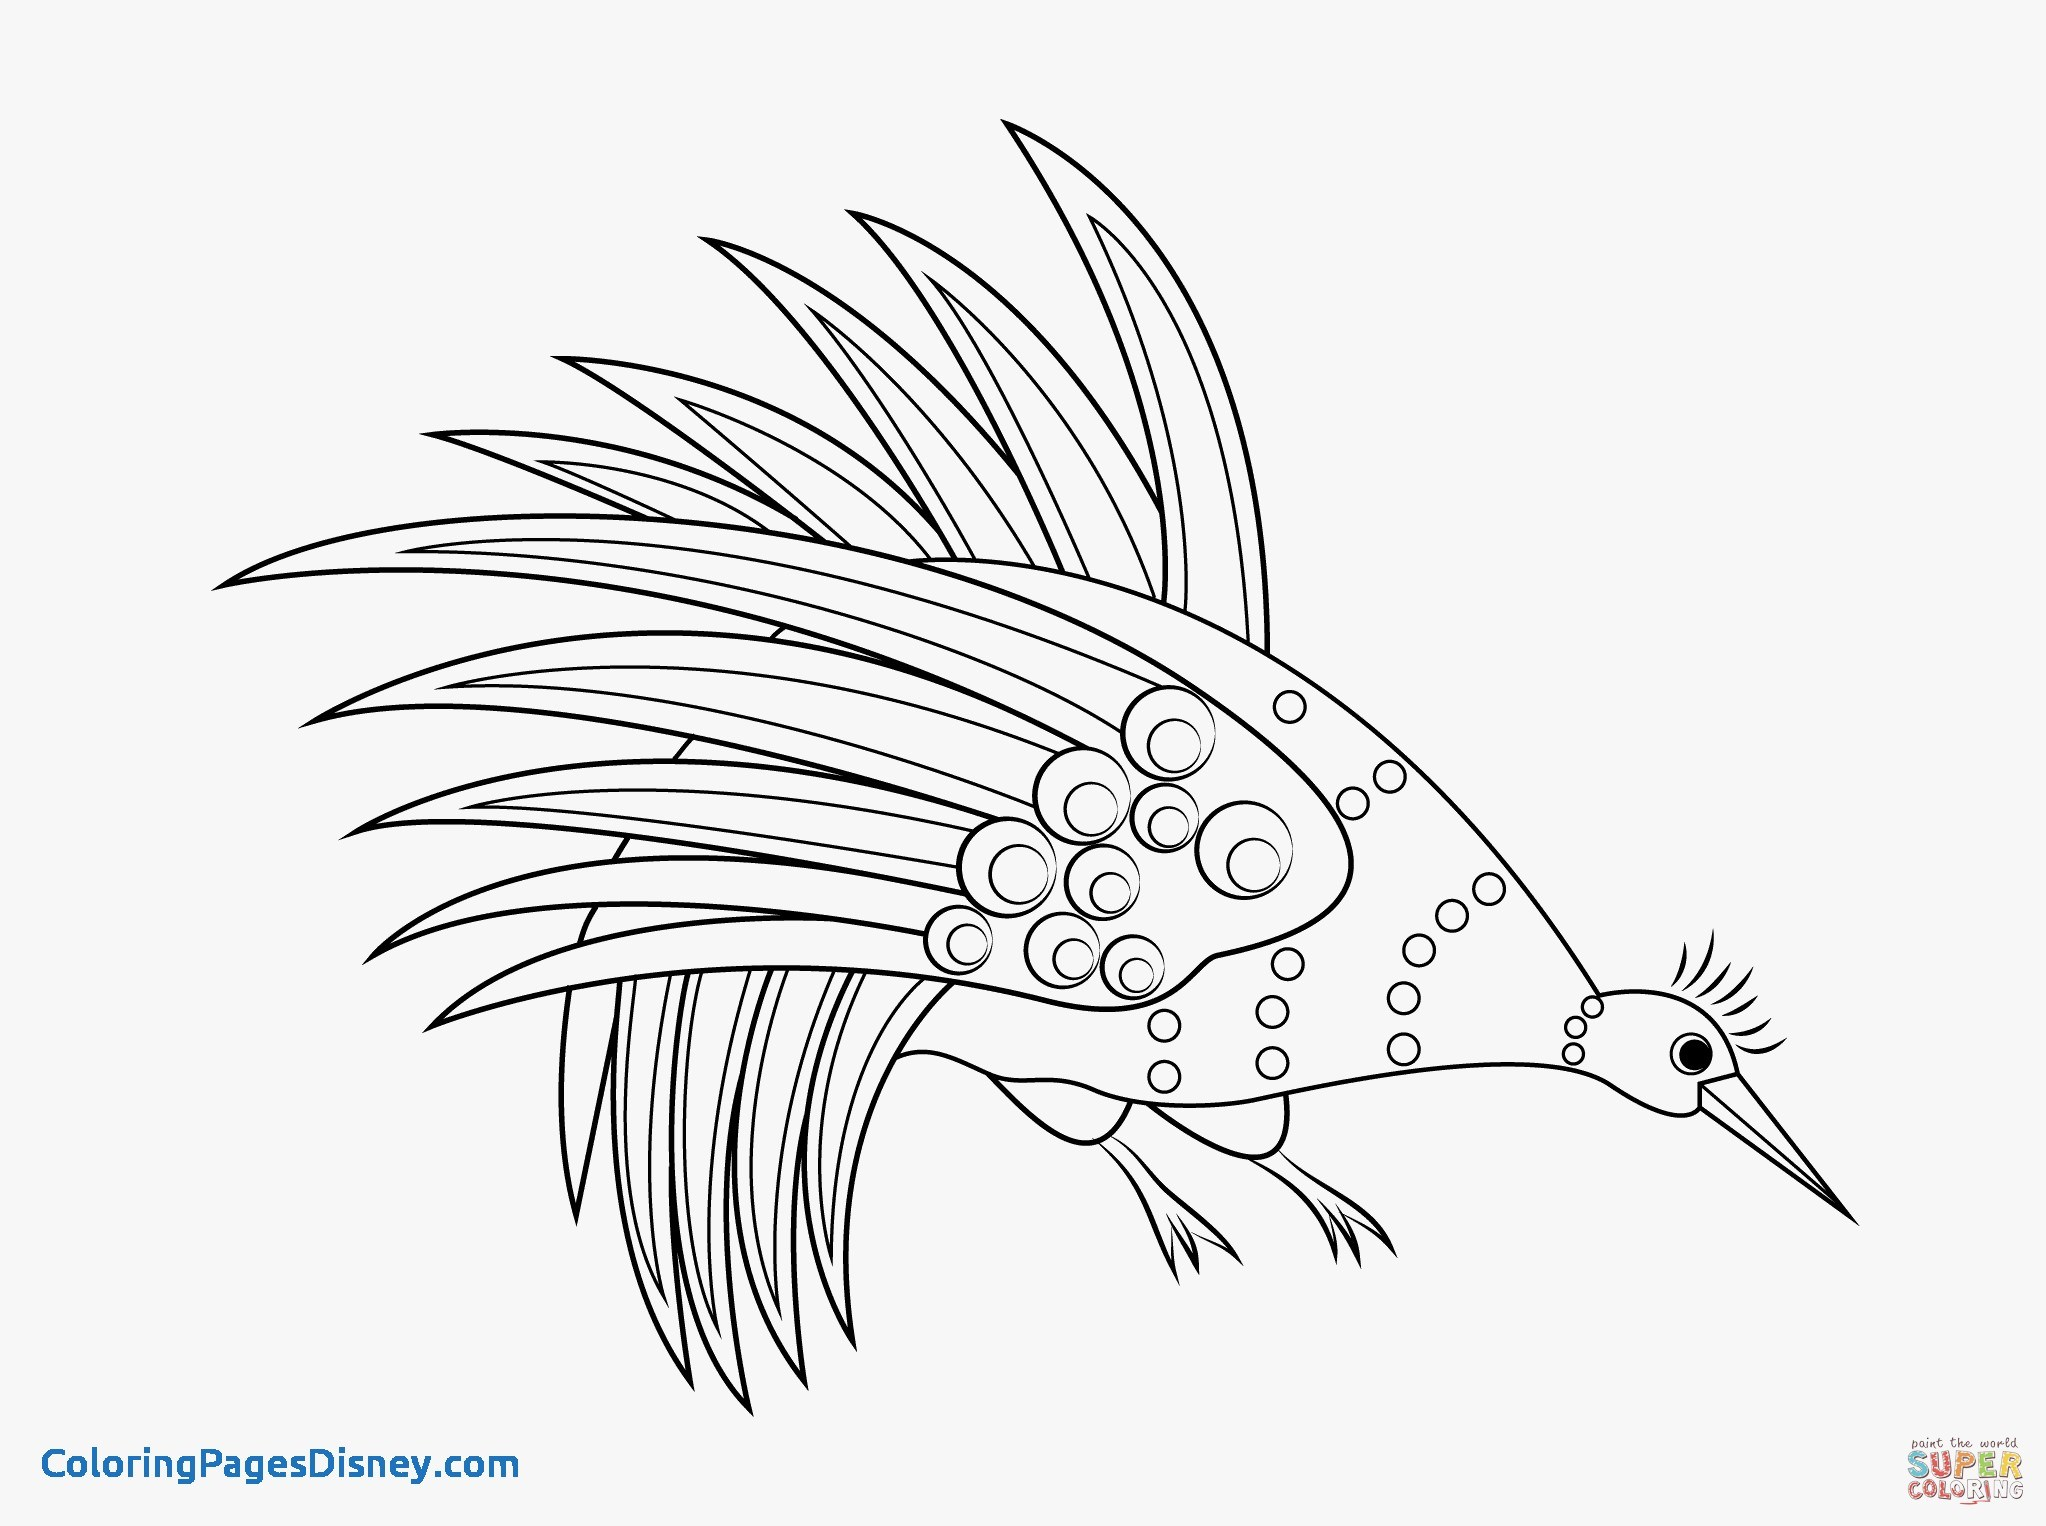 2046x1526 Aboriginal Art Coloring Pages Elegant Weird X Ray Fish Coloring